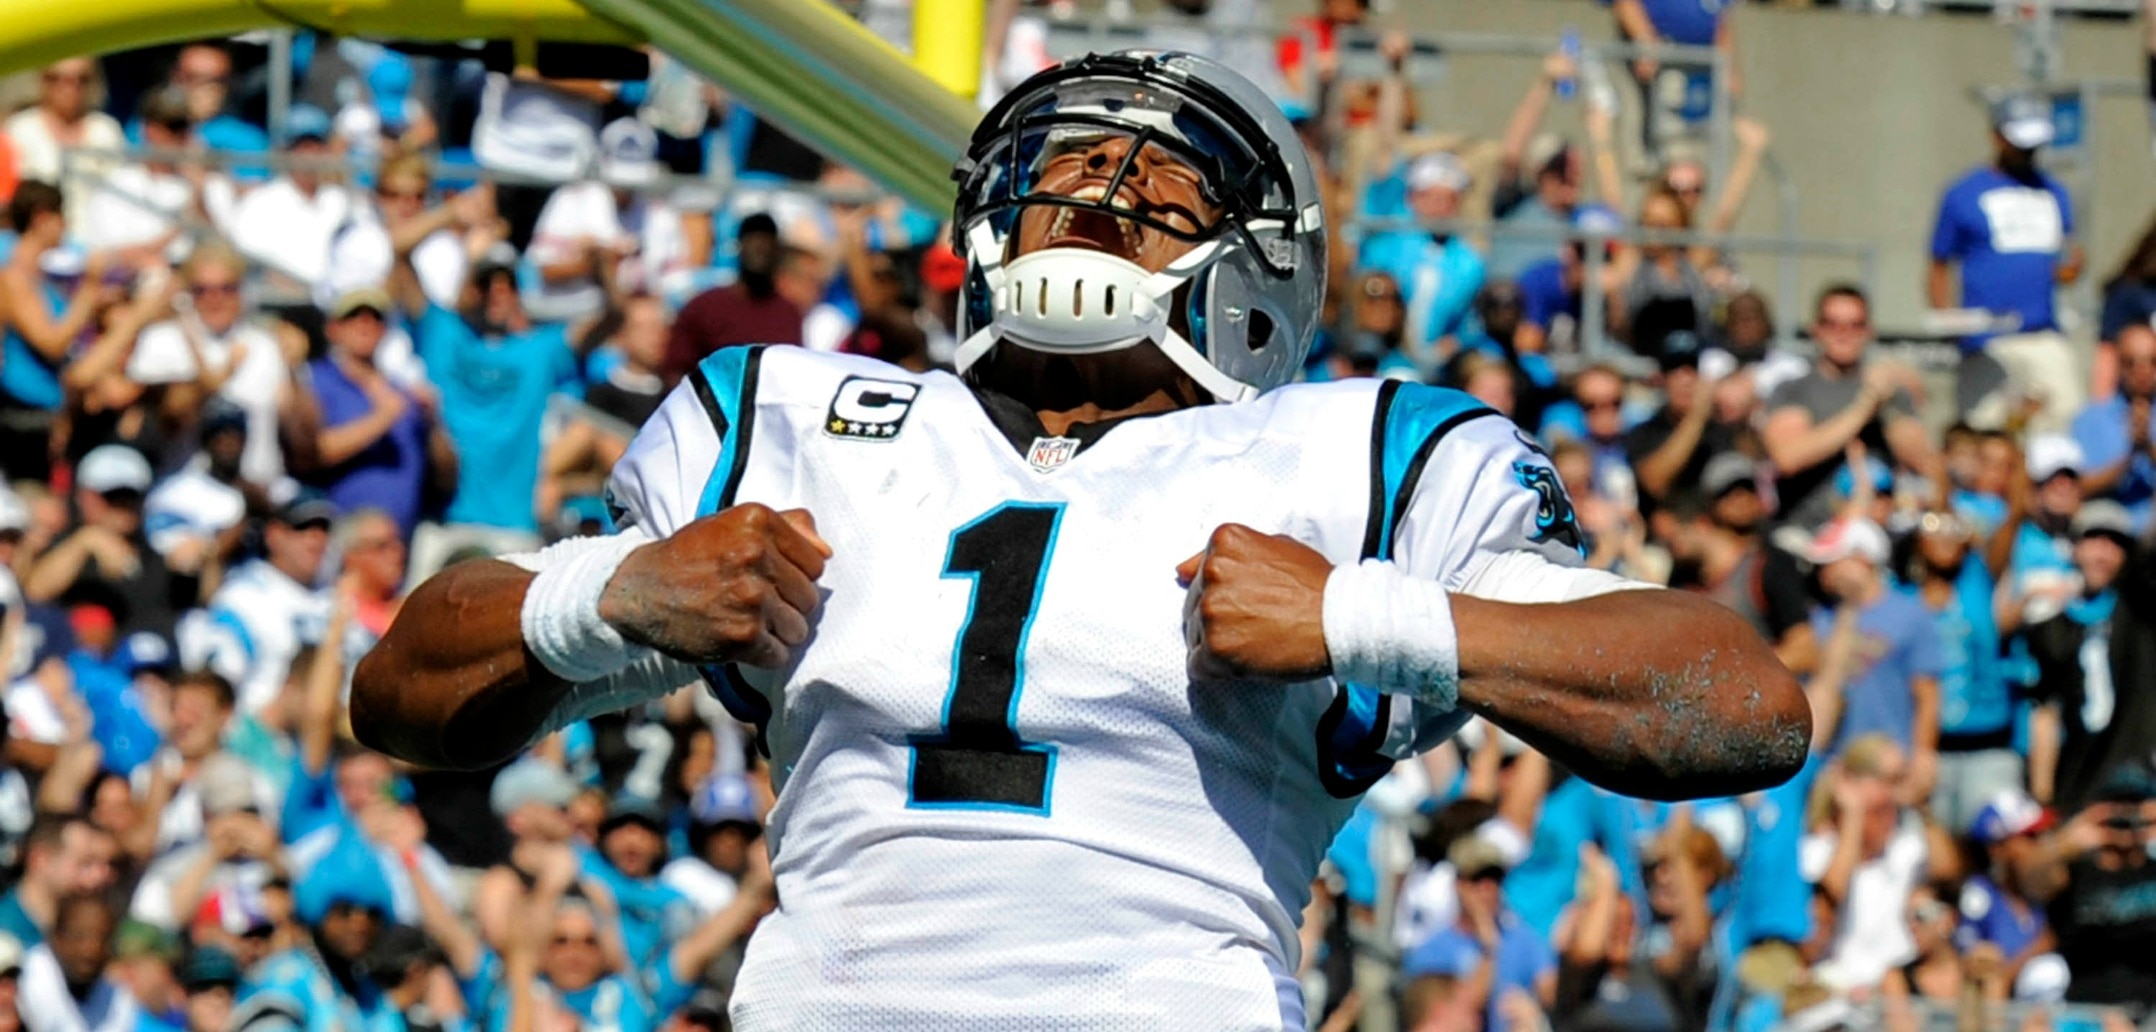 Courtesy of USA Today: Newton's importance to the Panthers cannot be overstated.